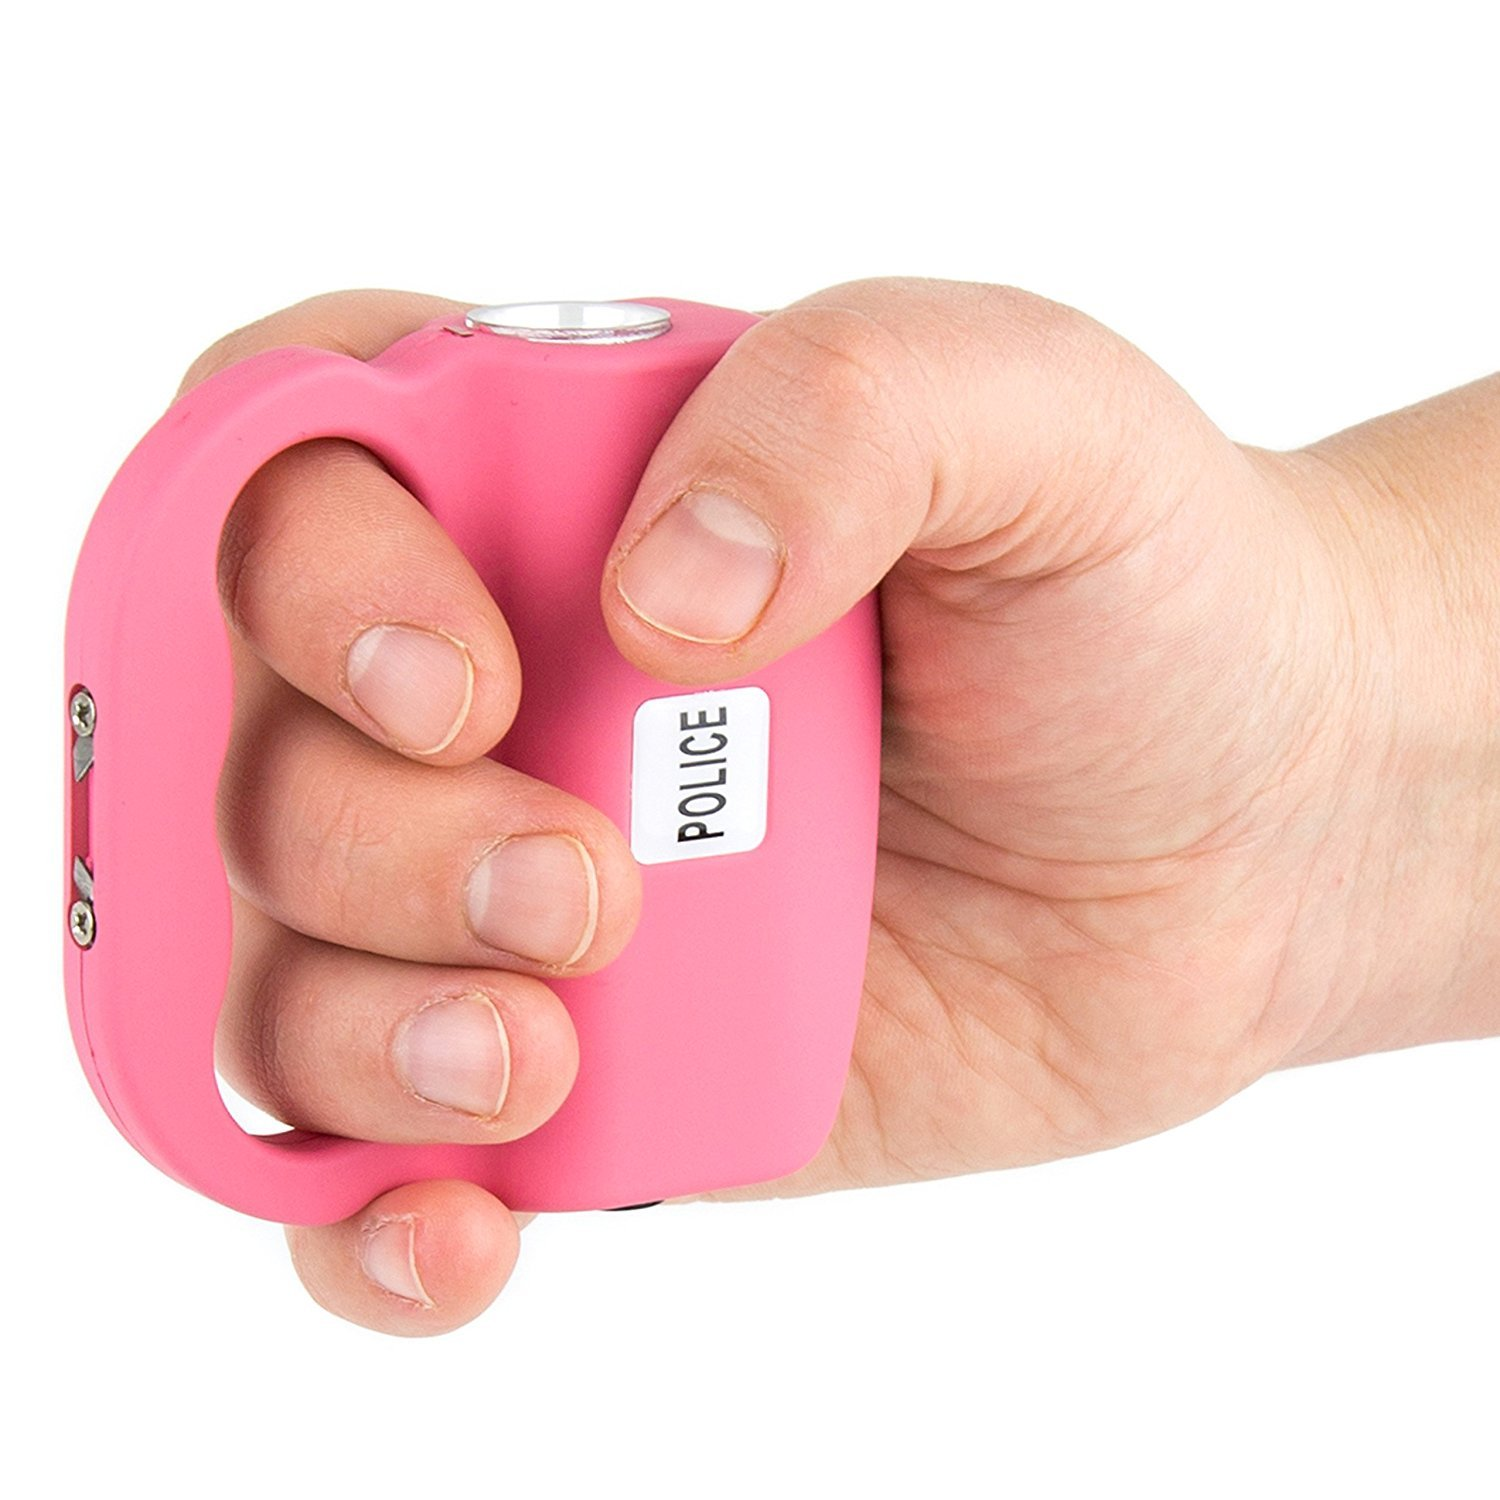 Police 517-15 Billion Heavy Duty Max Voltage Stun Gun - Rechargeable With Bright LED Light and Holster Case, Pink